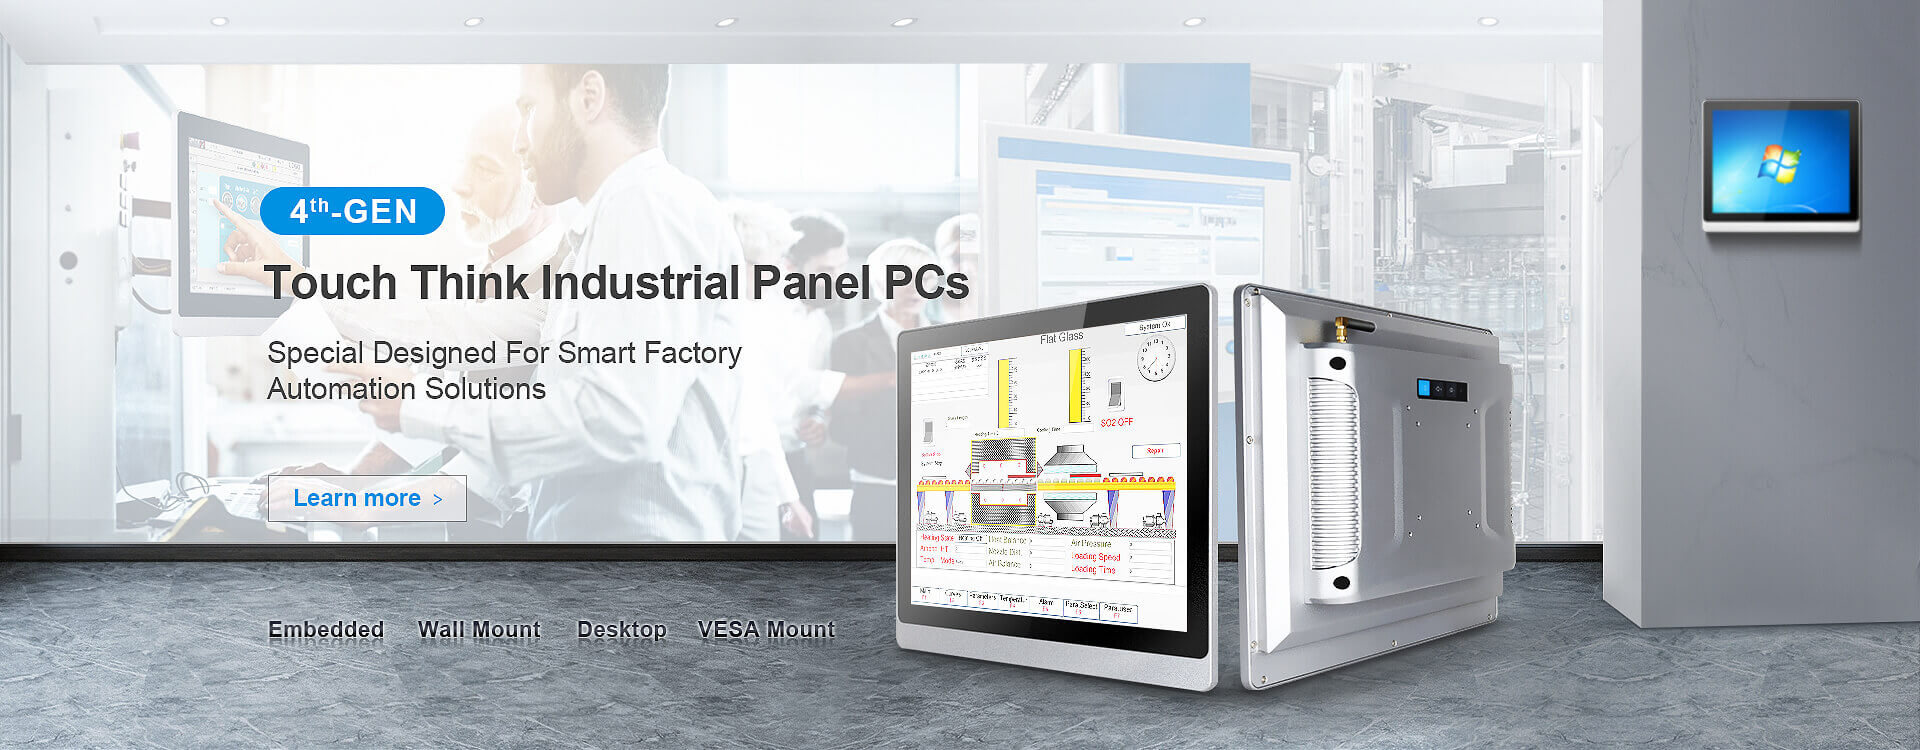 industrial touch screen panel PC